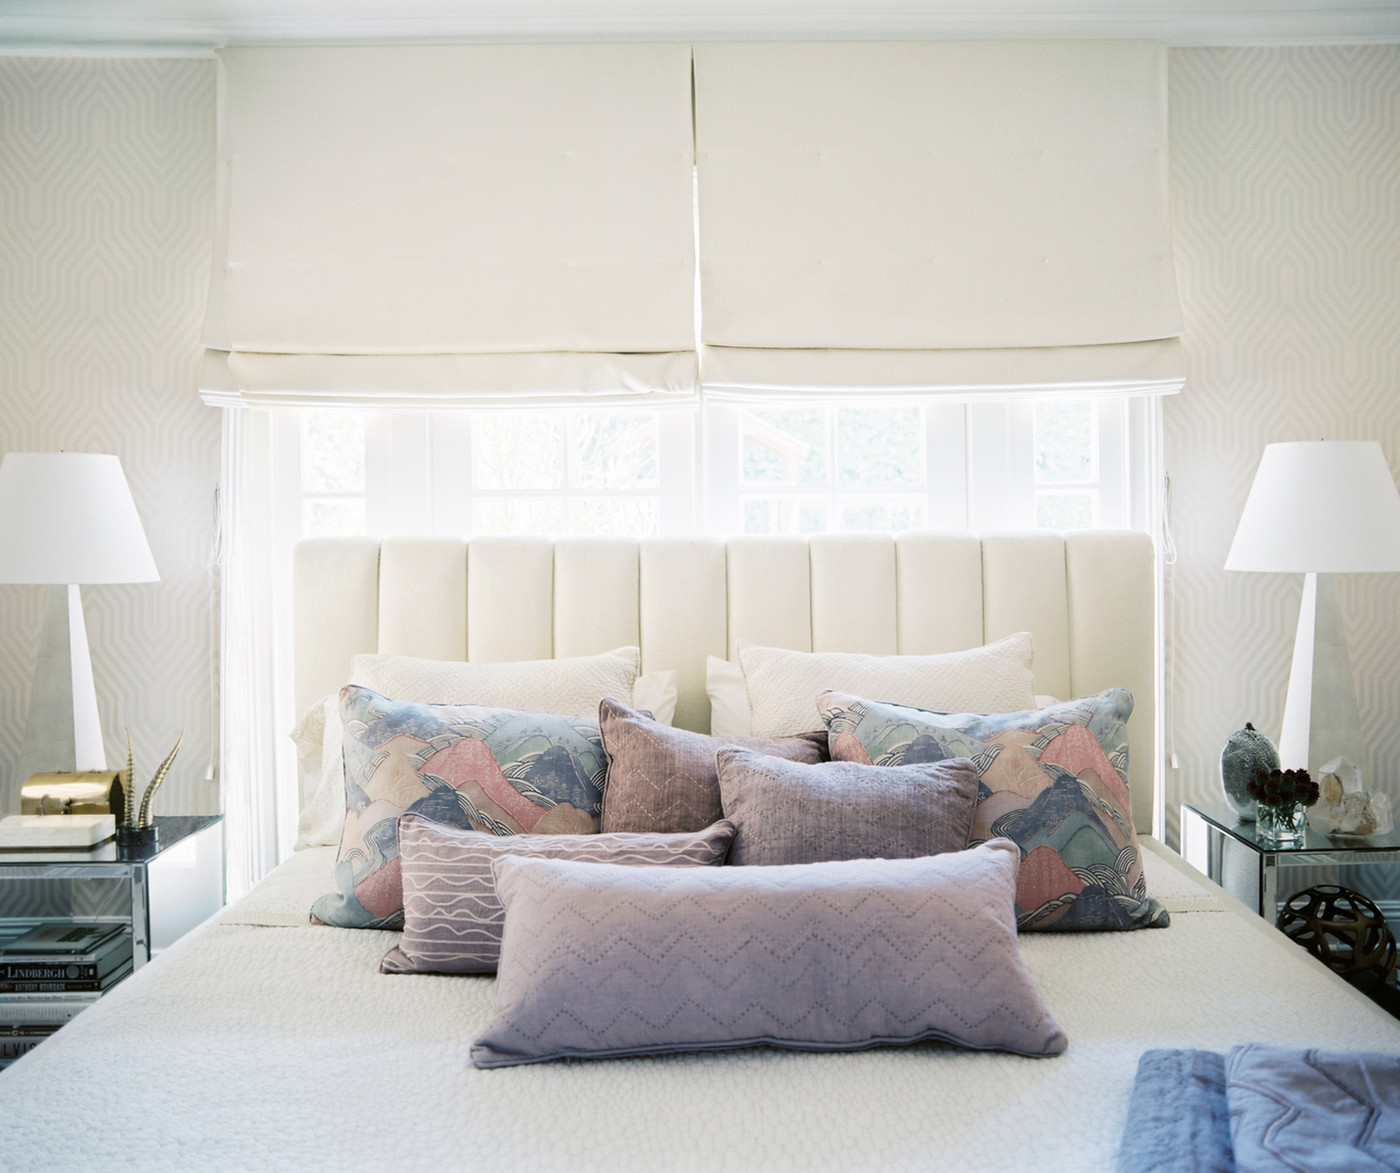 Ways To Arrange Bed Pillows Photos 15 Of 57